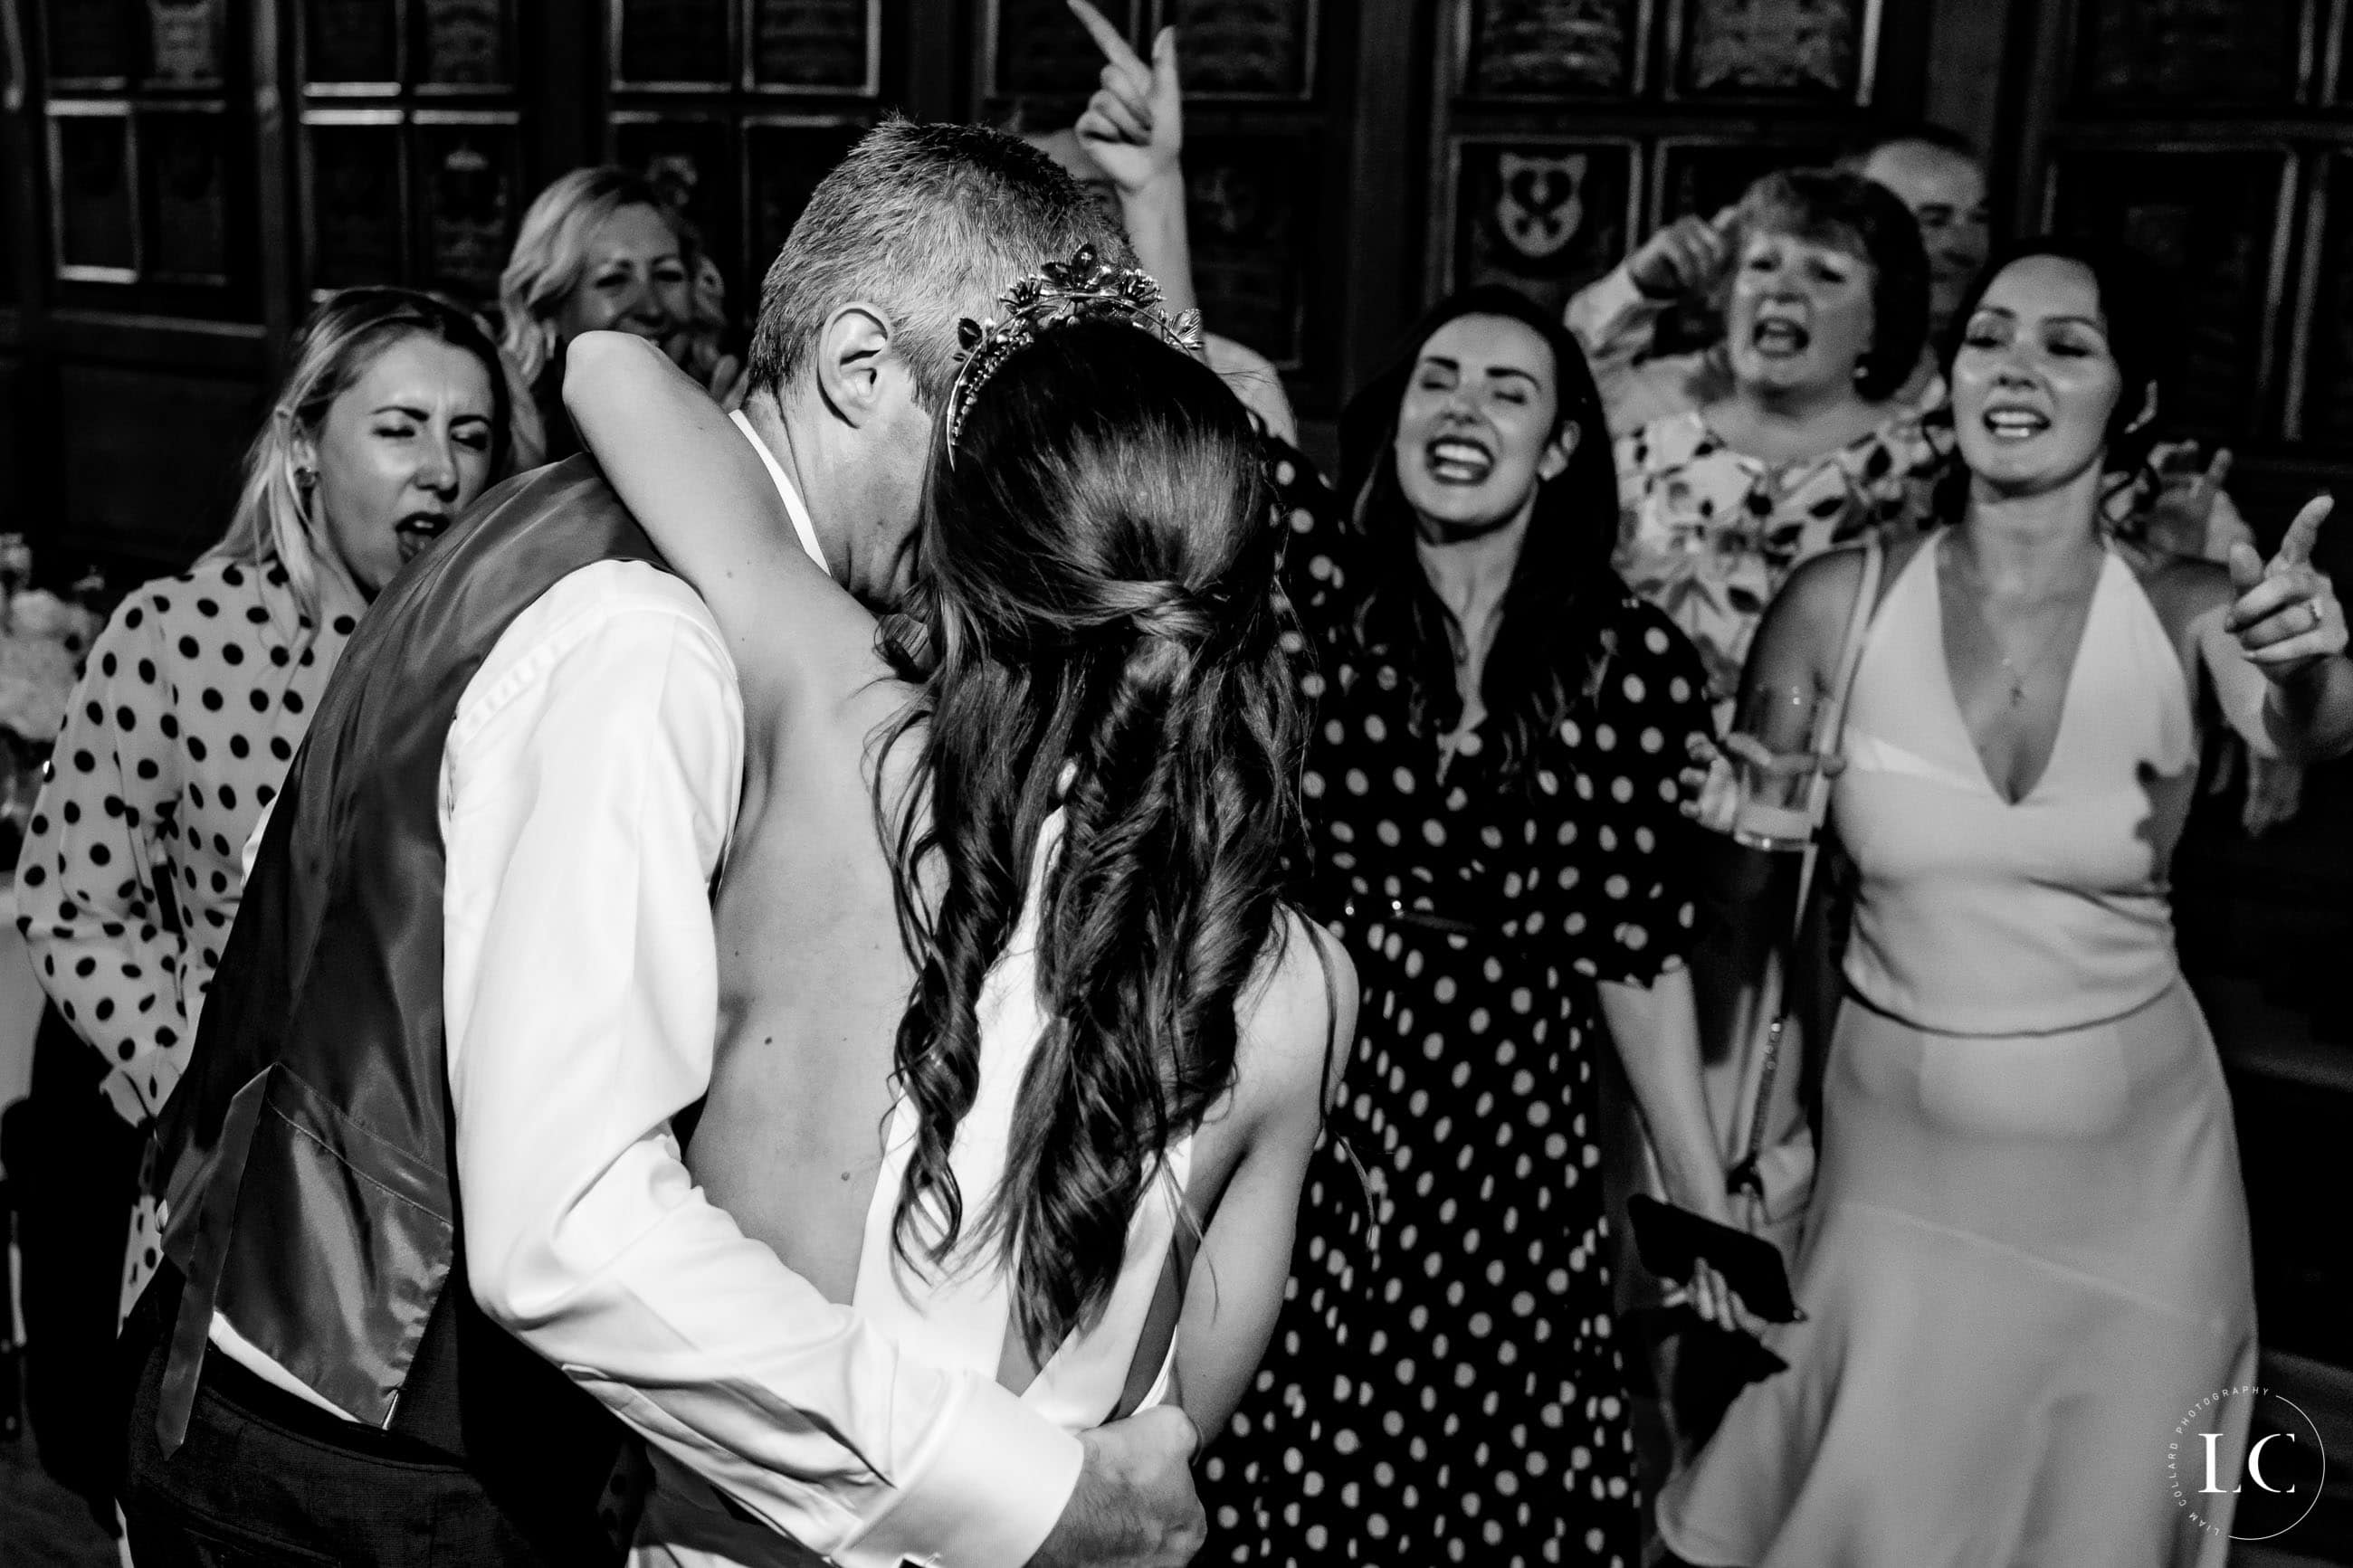 People embracing at wedding party